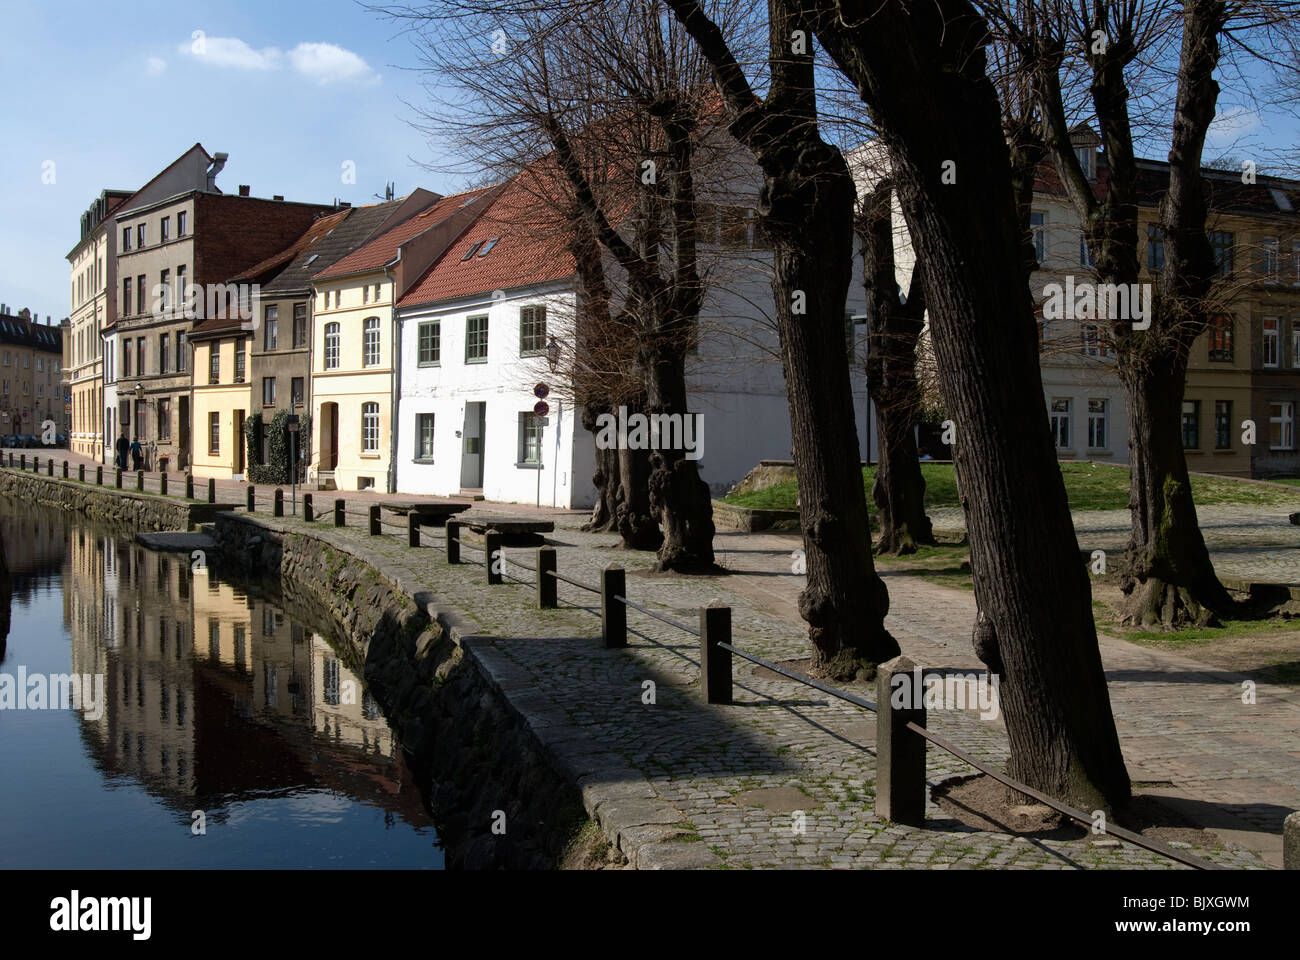 Historic buildings in Wismar, Mecklenburg-Western Pomerania, Germany. - Stock Image